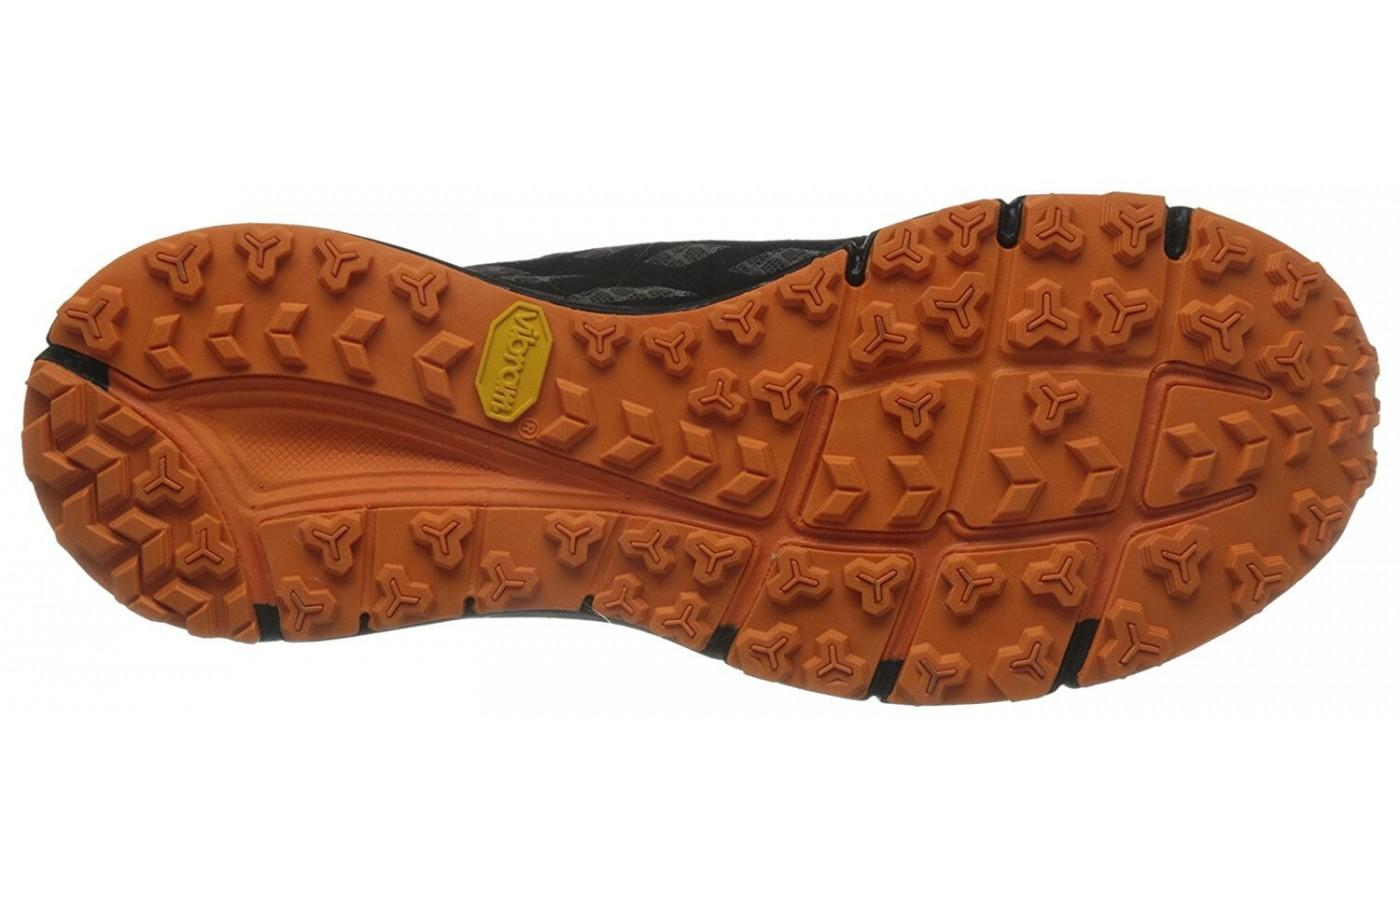 The North Face Endurus TR offers tenacious 3.5mm lugs for excellent traction and grip